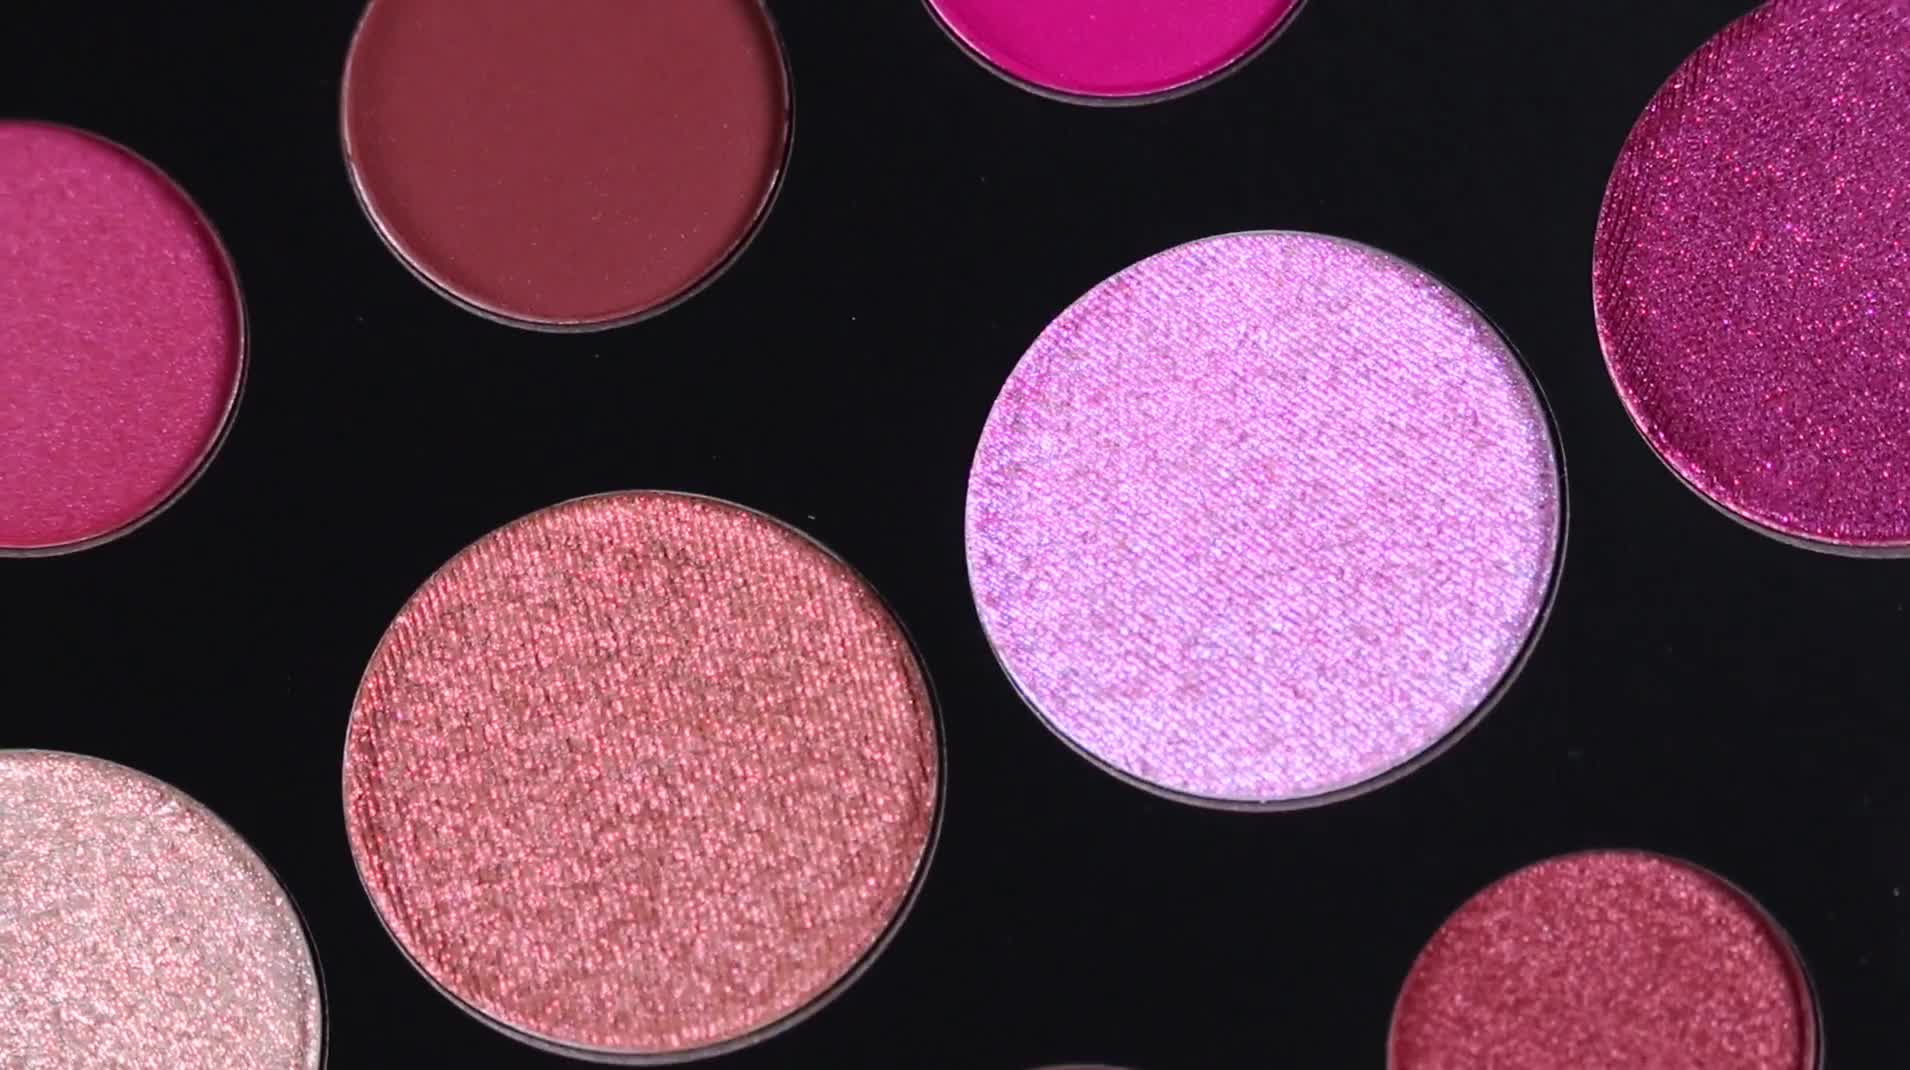 New Morphe 39S Such A Gem Eyeshadow Palette Review + Swatches